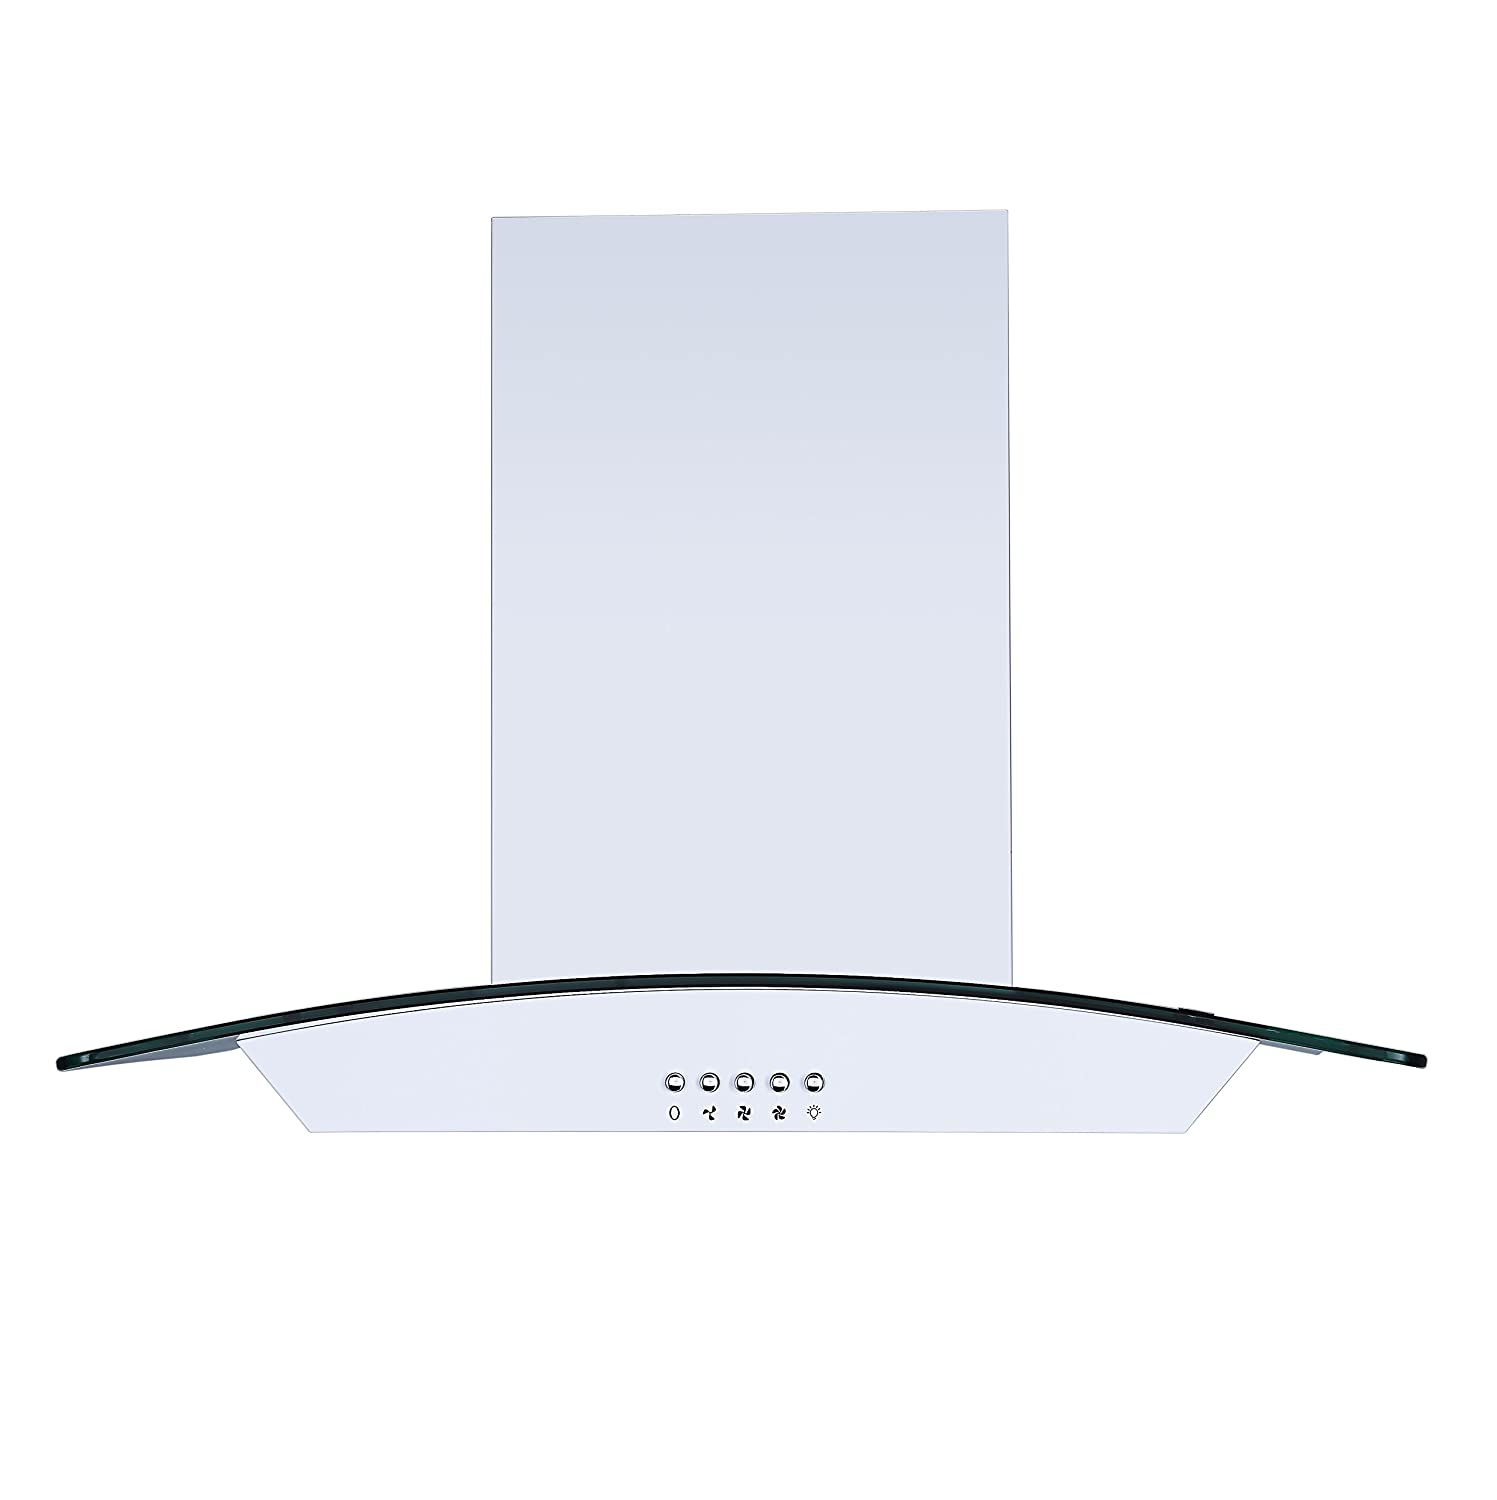 0f4d4098992 ... Cookology CGL600WH Unbranded Extractor Fan in White larger image